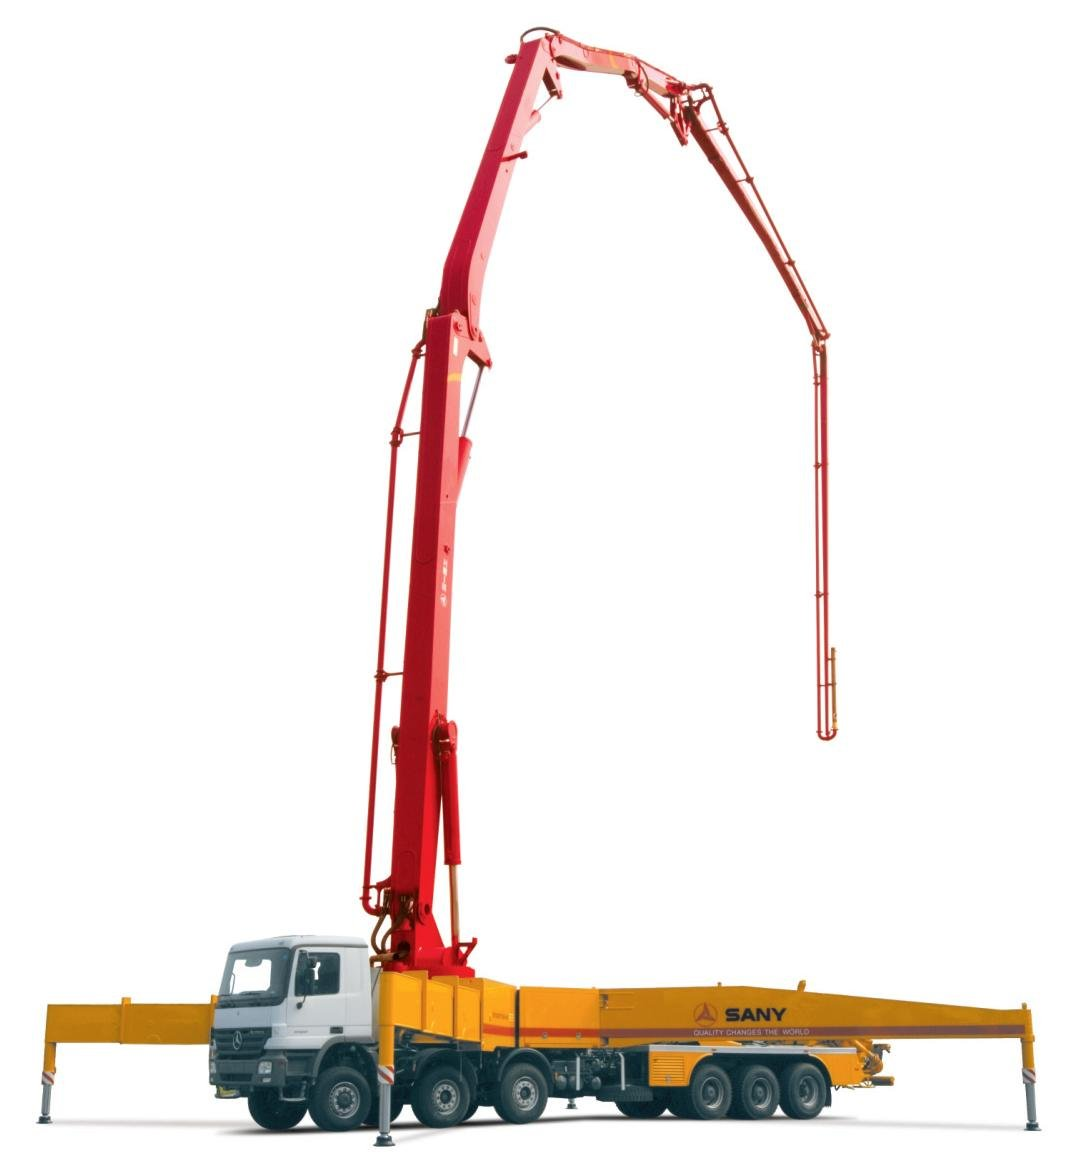 Truck-mounted Concrete Boom Pump - Buy Truck Concrete Pump Boom ...Truck-mounted Concrete Boom Pump - Buy Truck Concrete Pump Boom Product on Alibaba.com